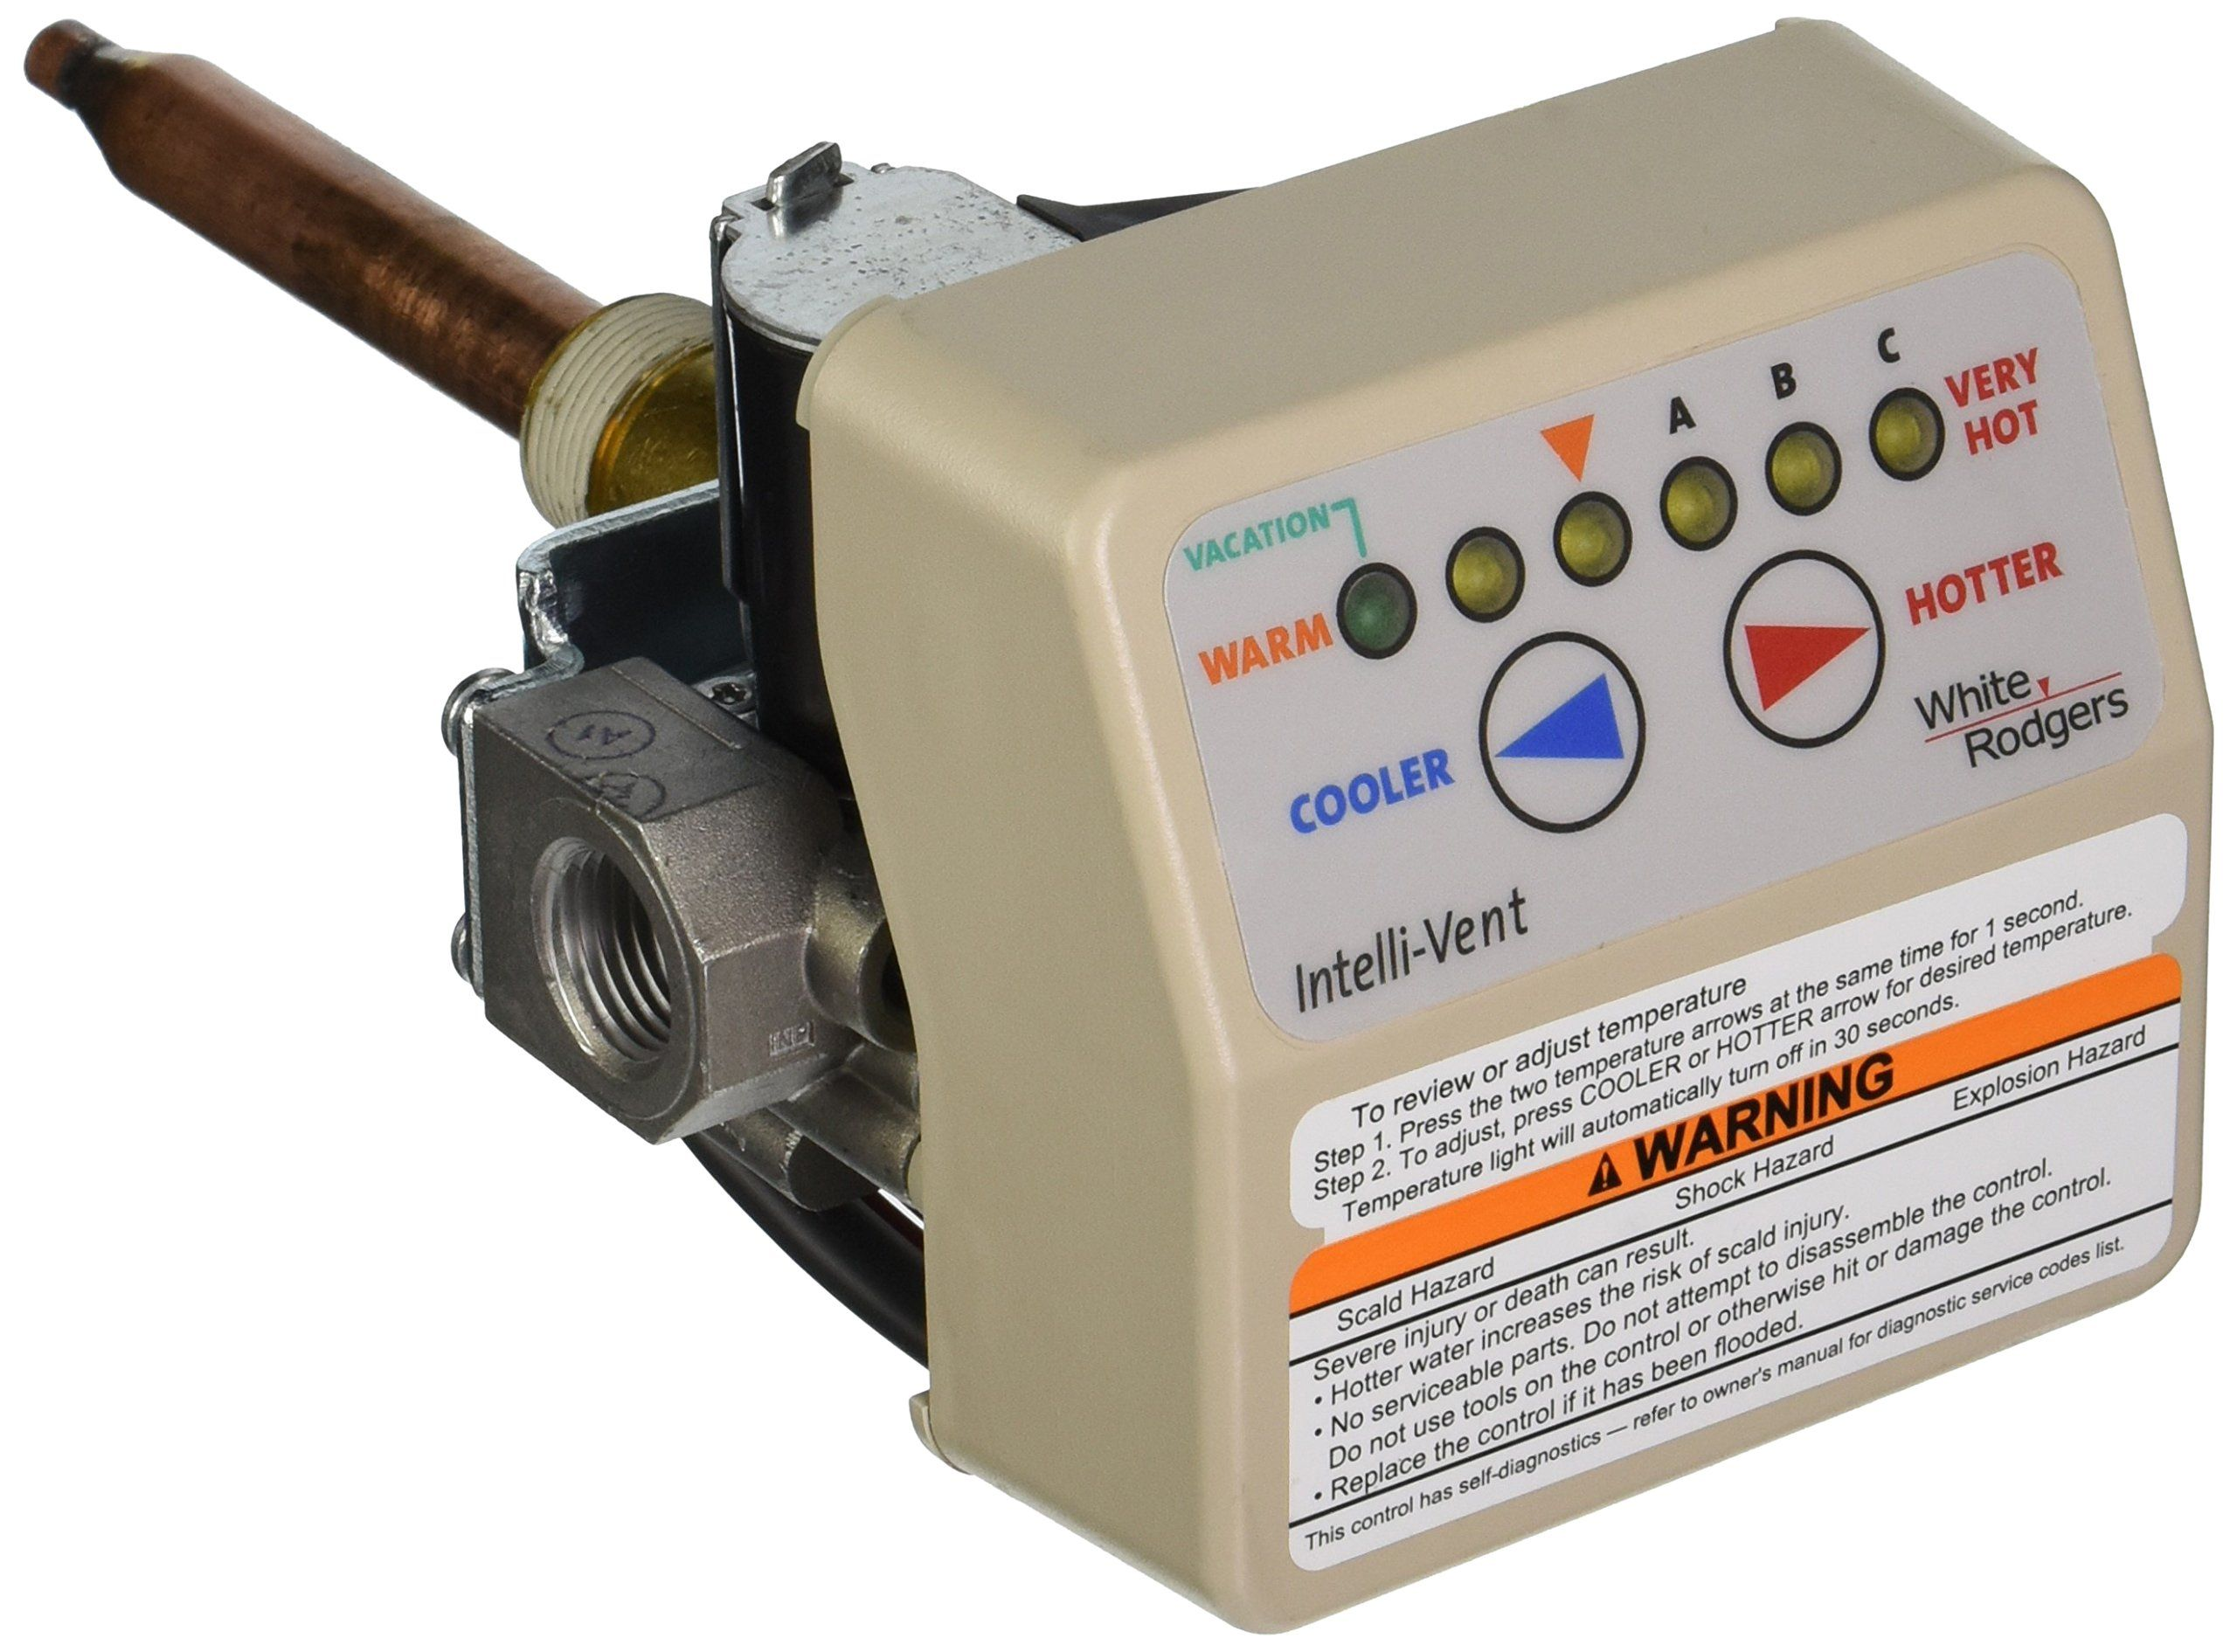 The Rheem SP13845A is a gas control thermostat. HVAC